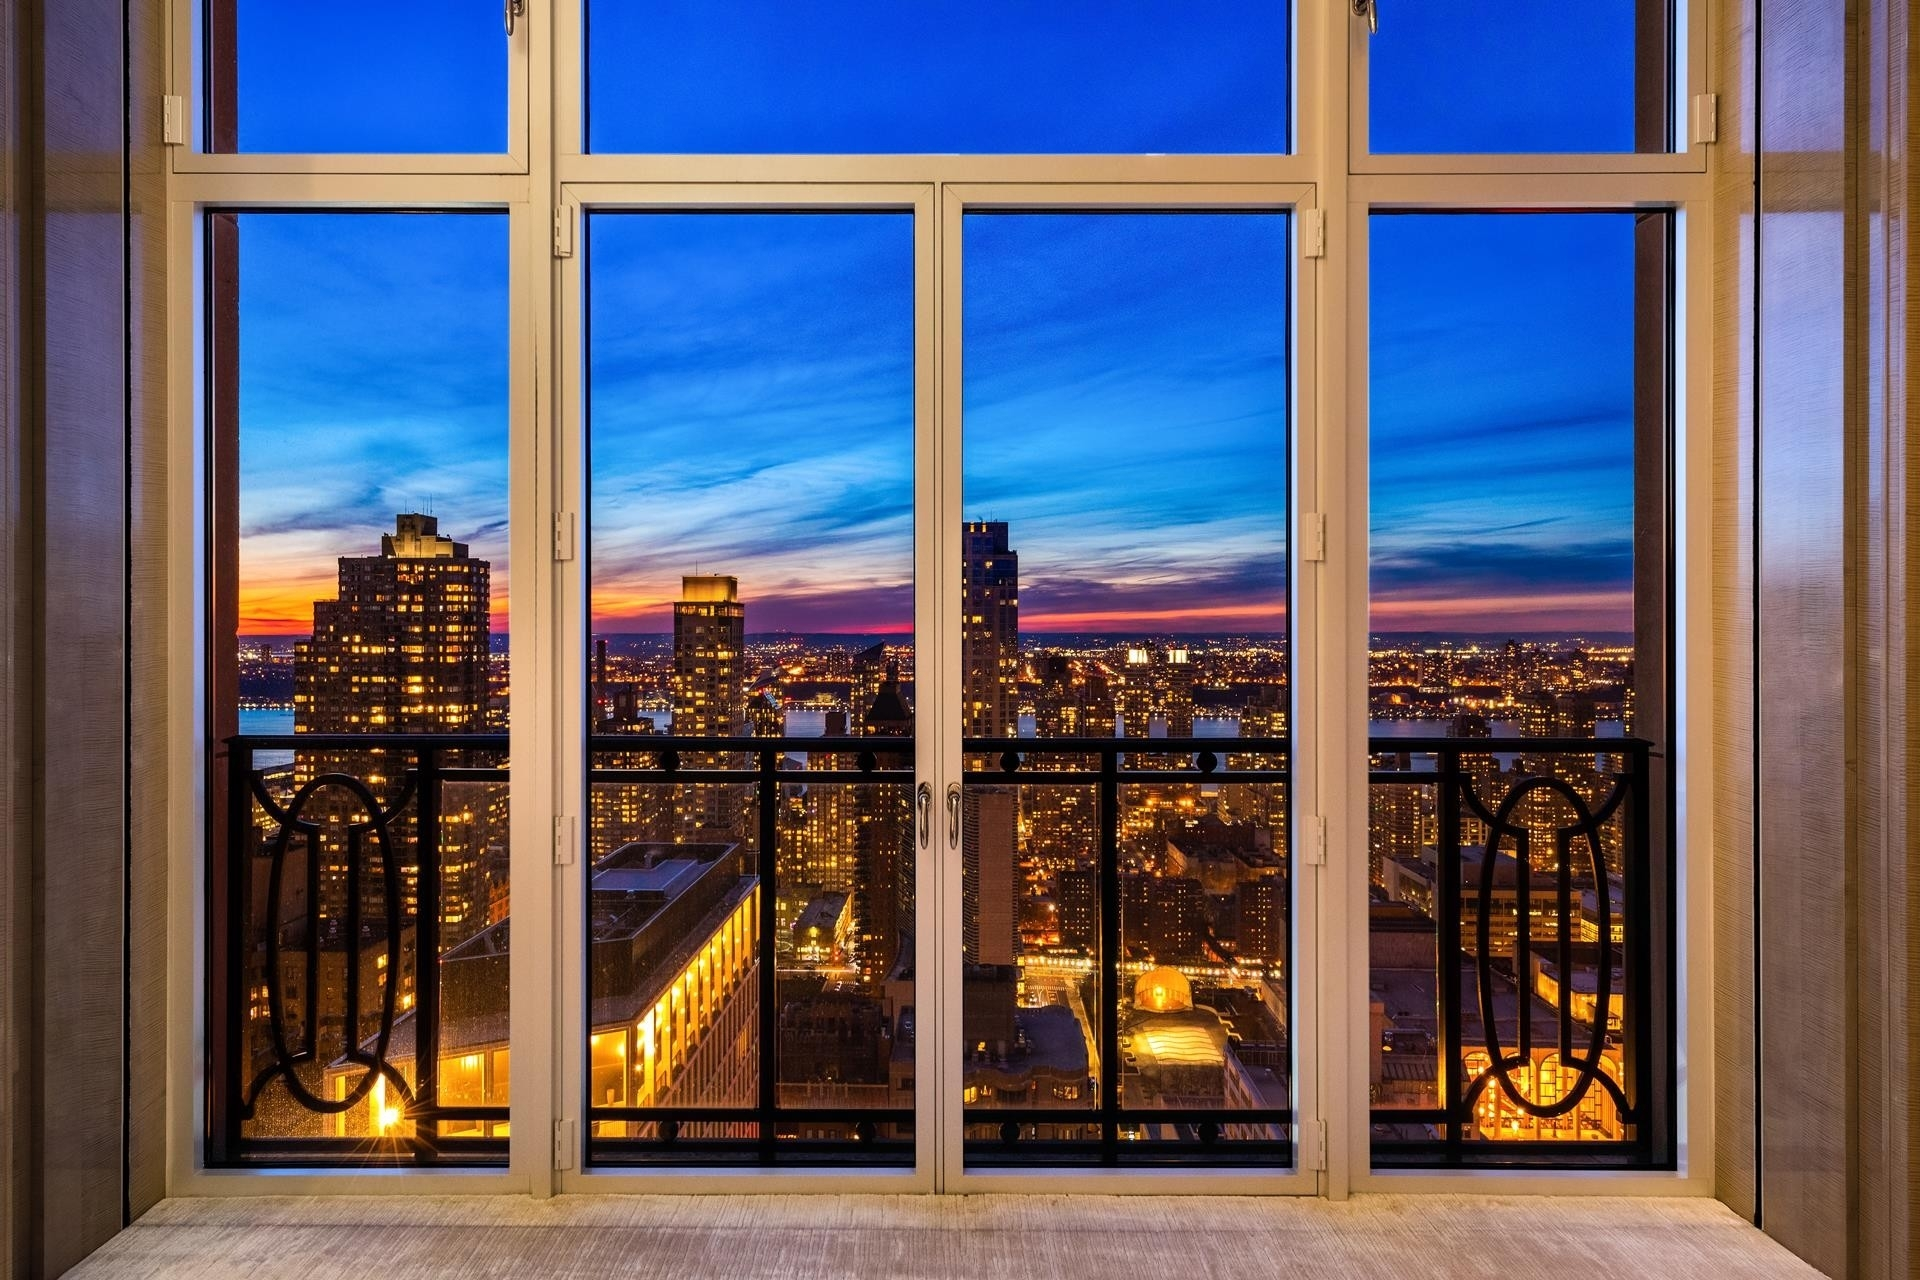 6. Condominiums для того Продажа на 15 Cpw, 15 CENTRAL PARK W, PH41 Lincoln Square, New York, NY 10023